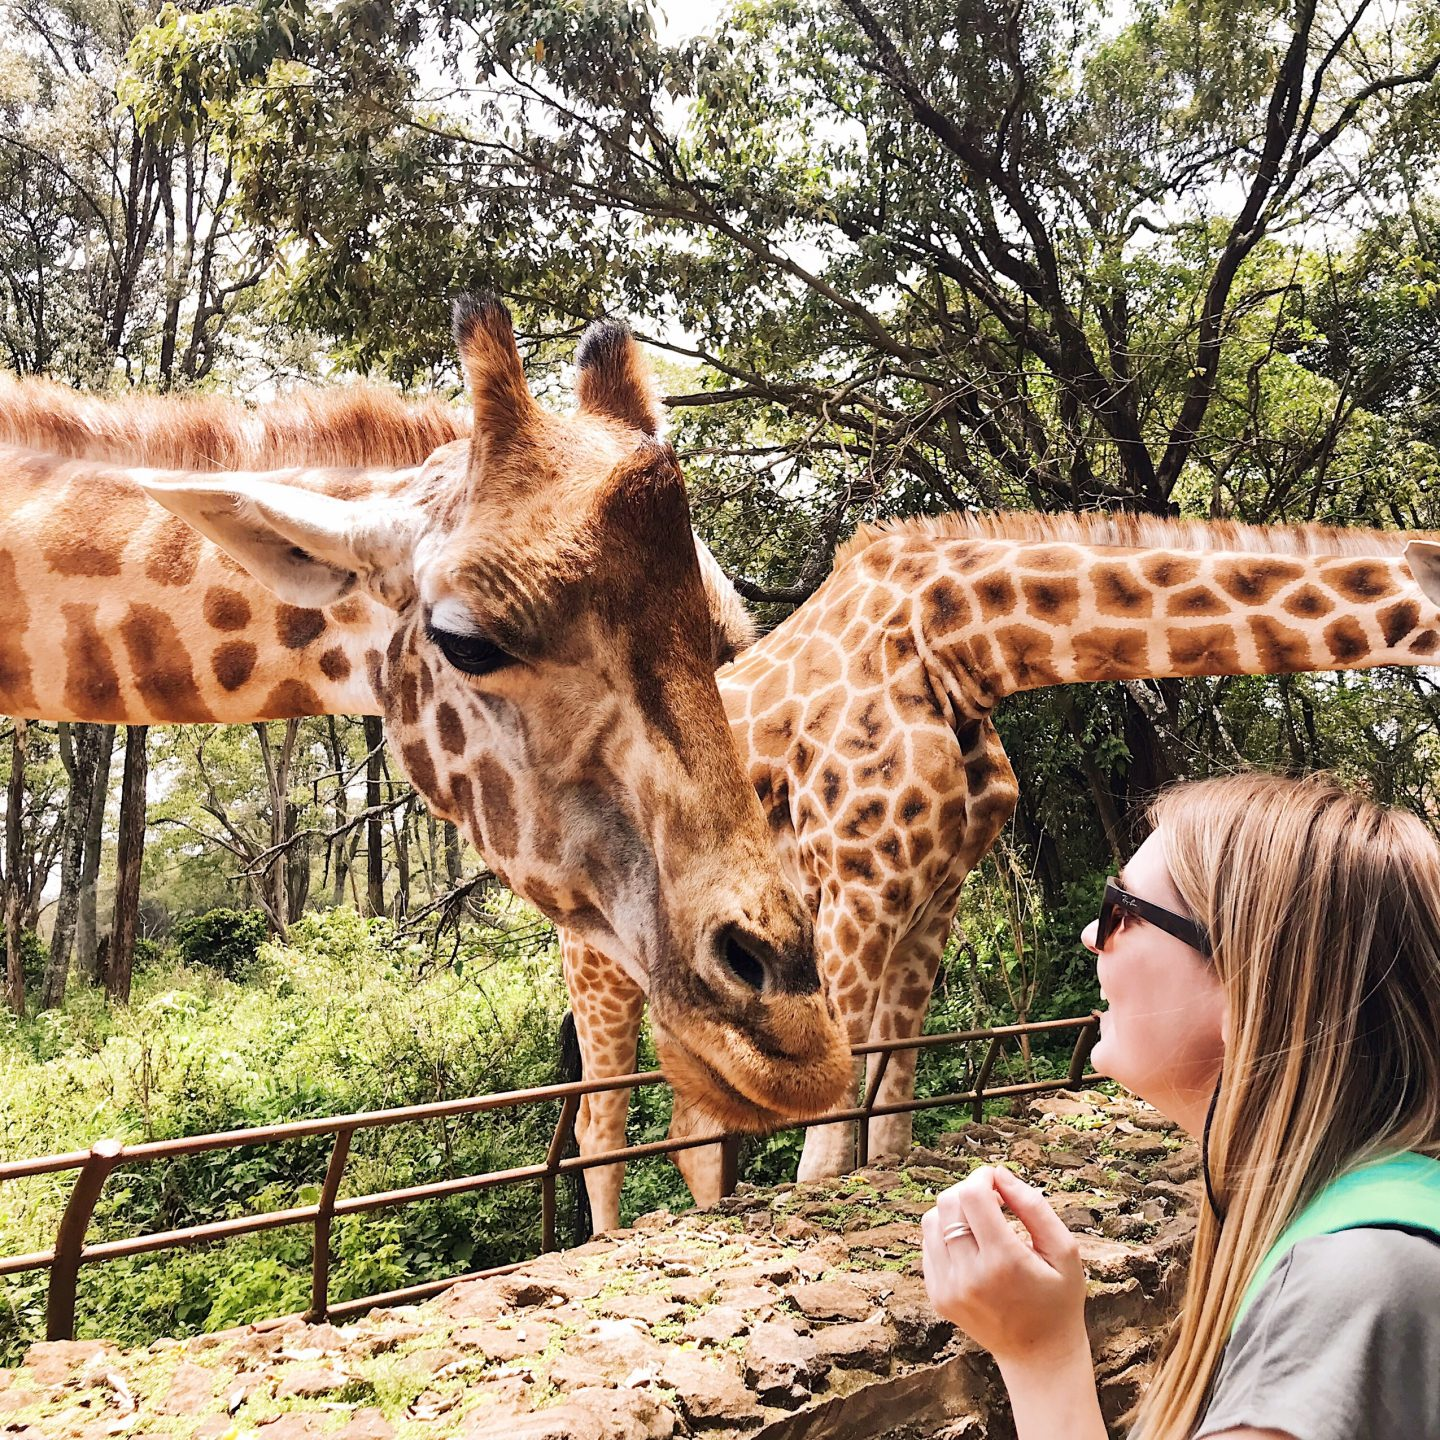 How to spend a day in Nairobi